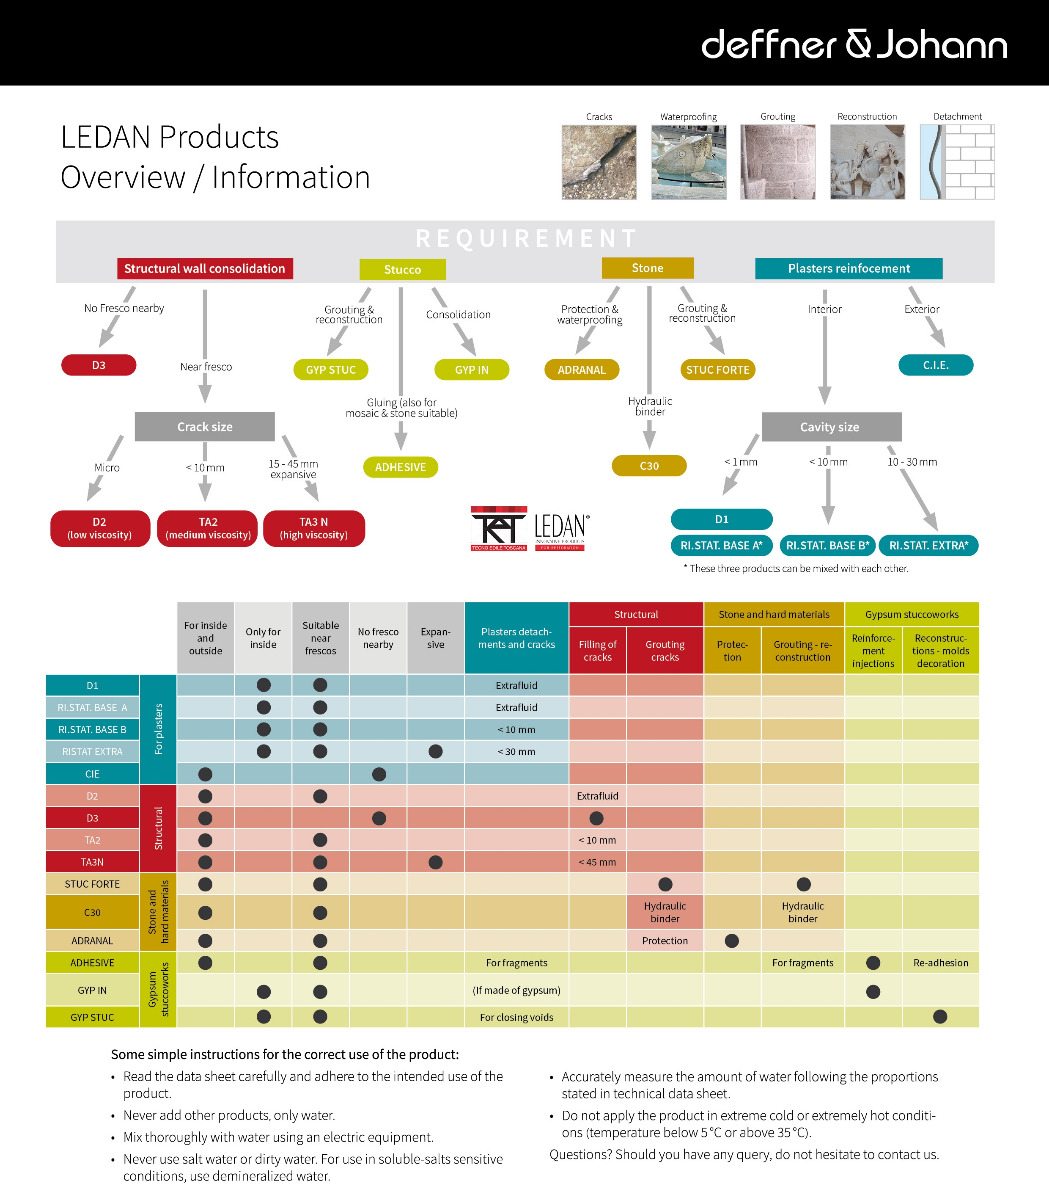 LEDAN Products Overview and Information